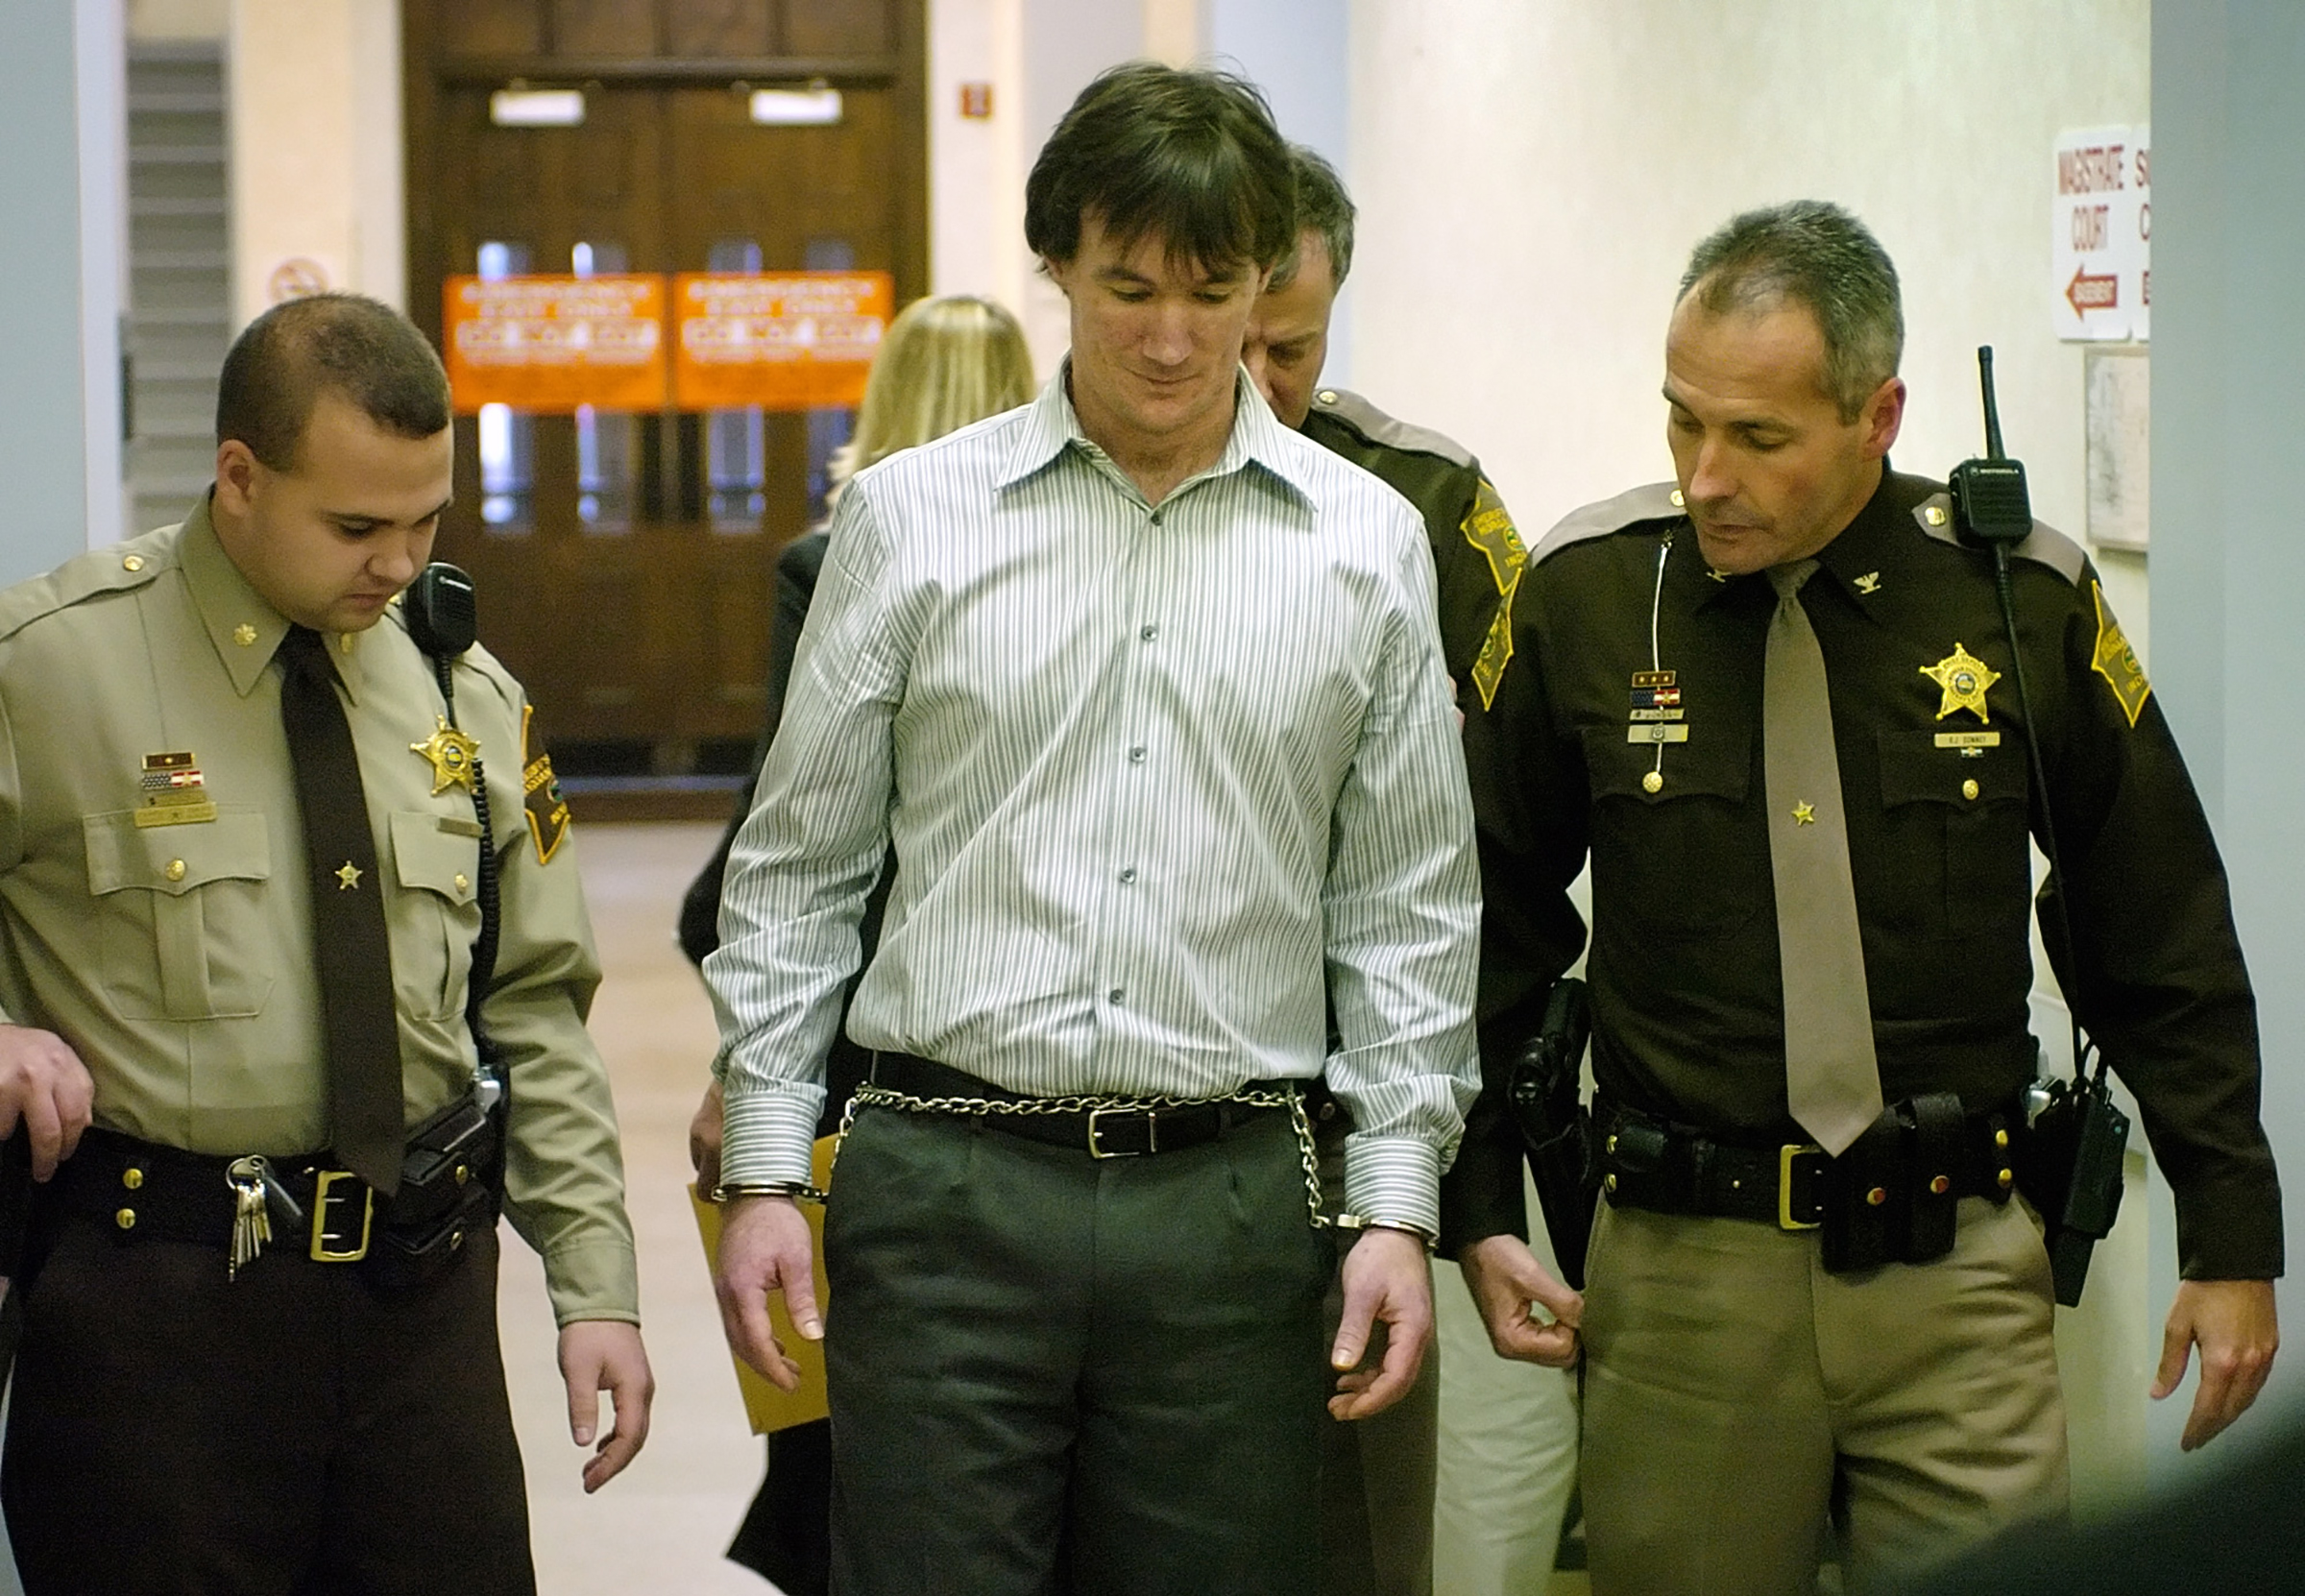 John Myers II, center, is escorted from the Morgan County Courthouse Friday, Dec. 1, 2006, after receiving a sentence of 65 years in prison for the murder Jill Behrman, 19, in May 2000.